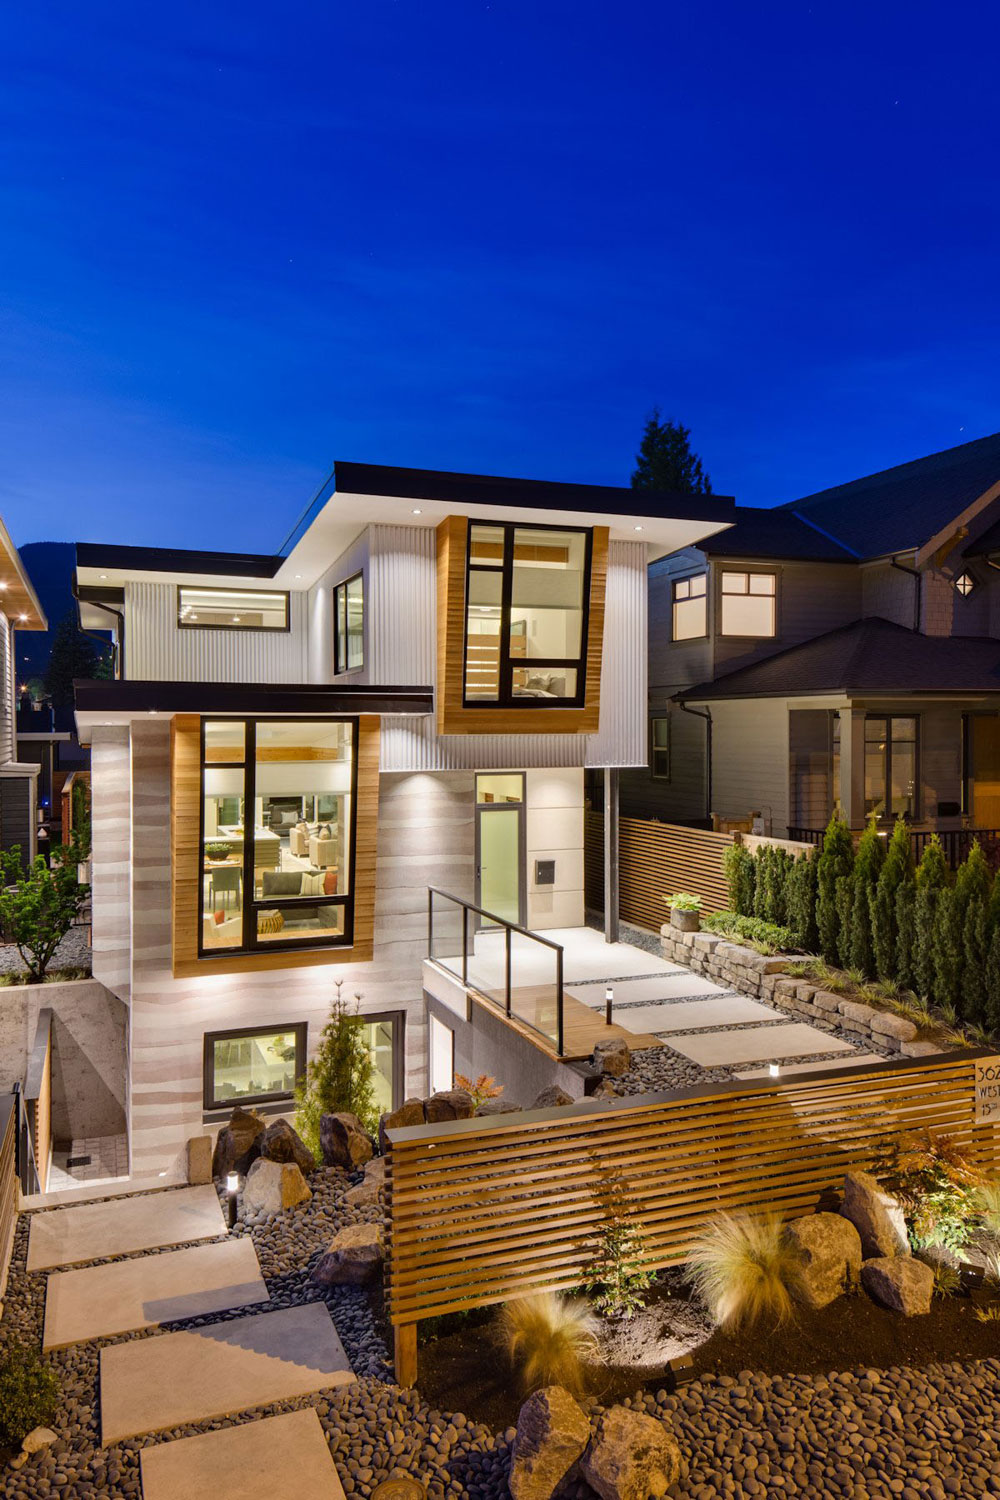 Midori-Uchi-by-Naikoon-Contracting-Kerschbaumer-Design Check out these Canadian architectural examples